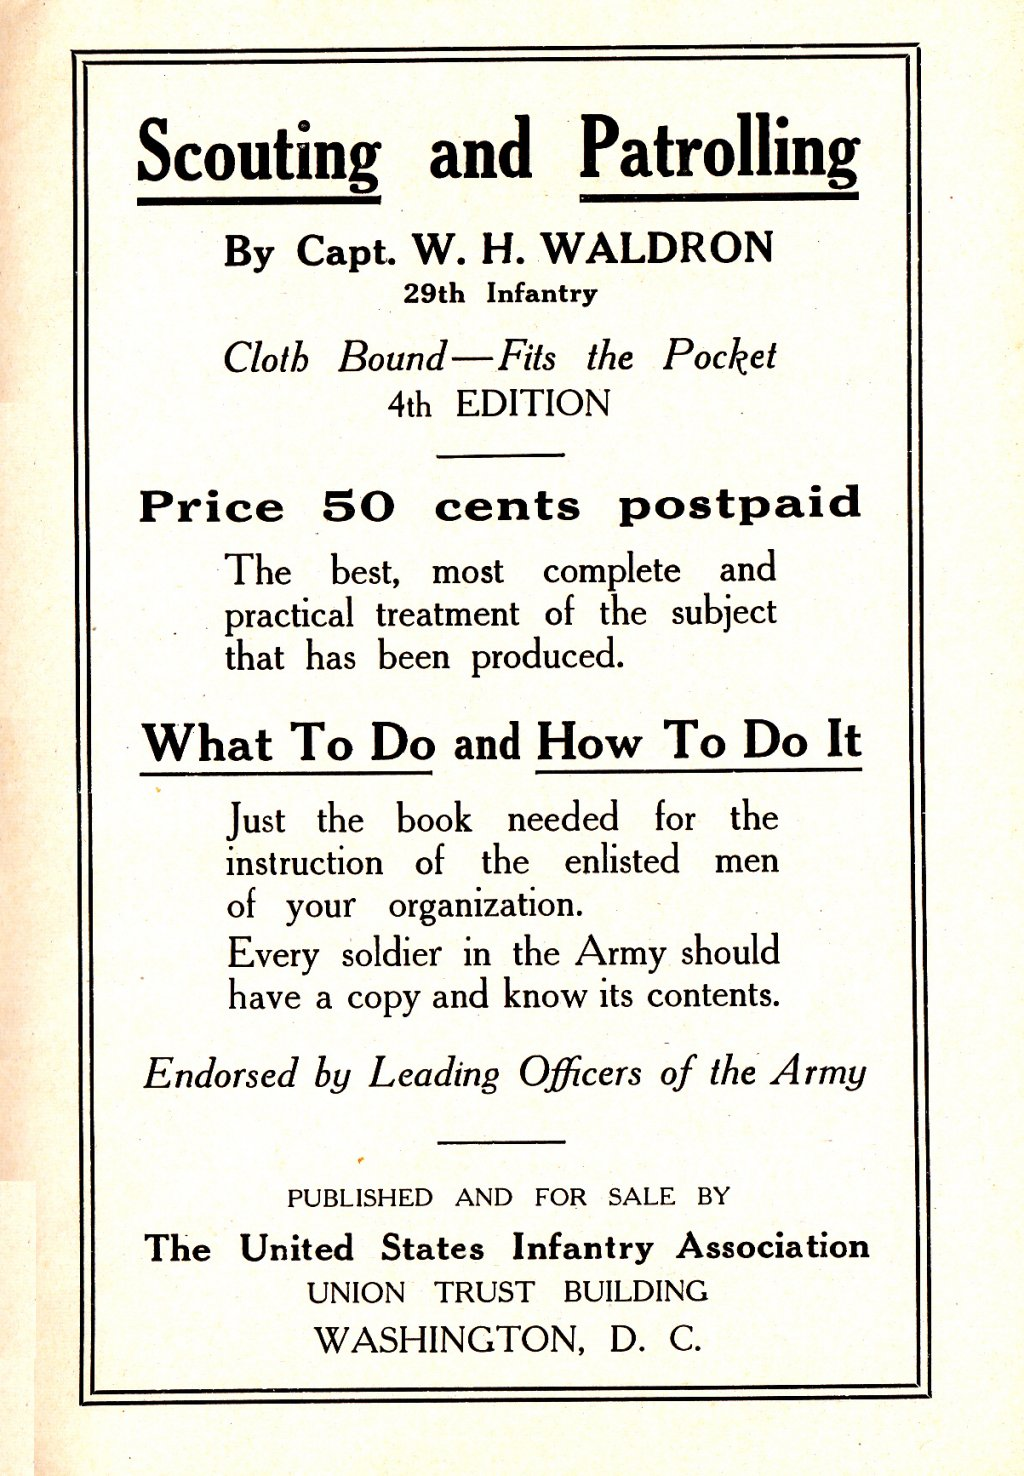 314th Infantry Regiment - Infantry Soldiers Handbook - Waldron - Page 251